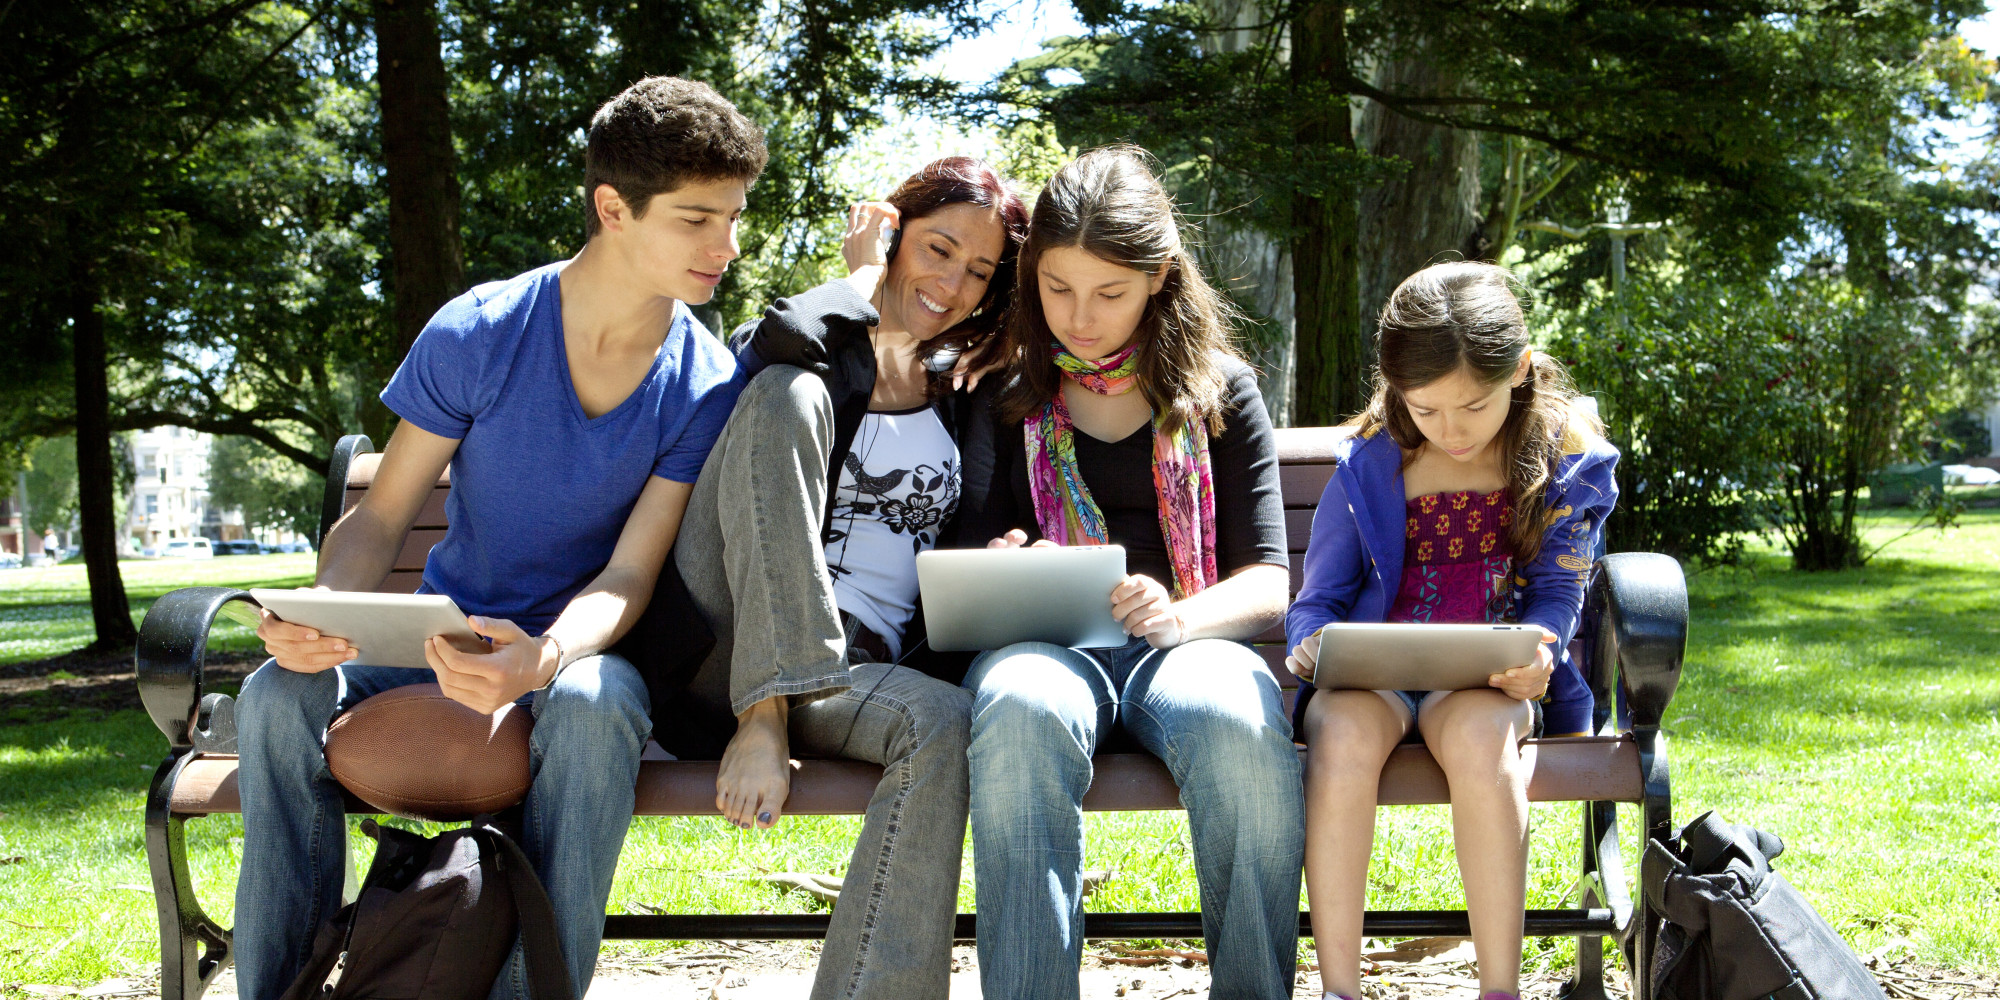 role of peer groups in the life of teenagers Get information, facts, and pictures about peer pressure at encyclopediacom make research projects and school reports about peer pressure easy with credible.